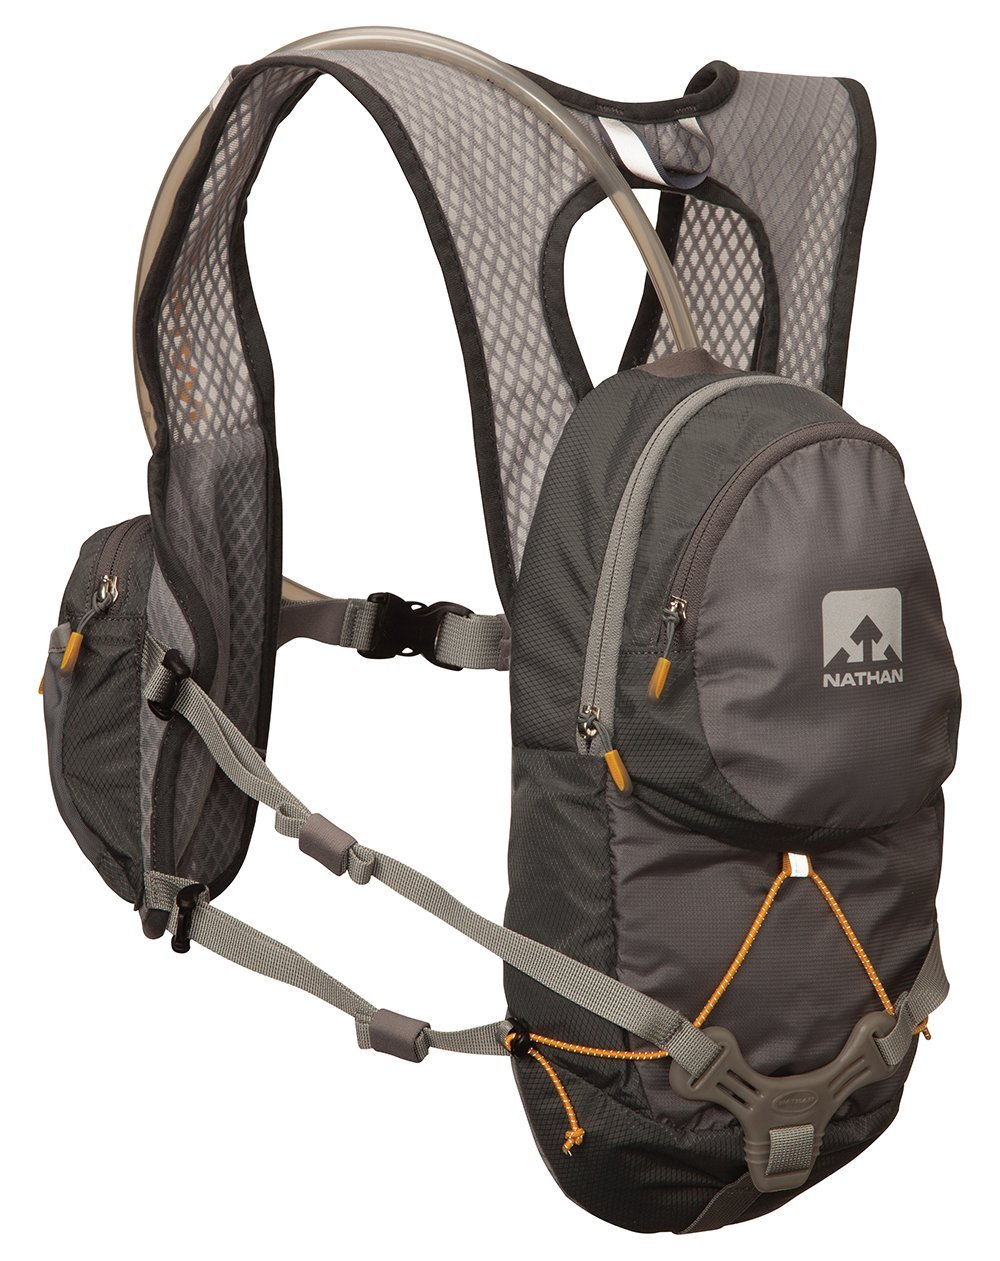 Nathan NS5025 Hpl Hydration Running Backpack review